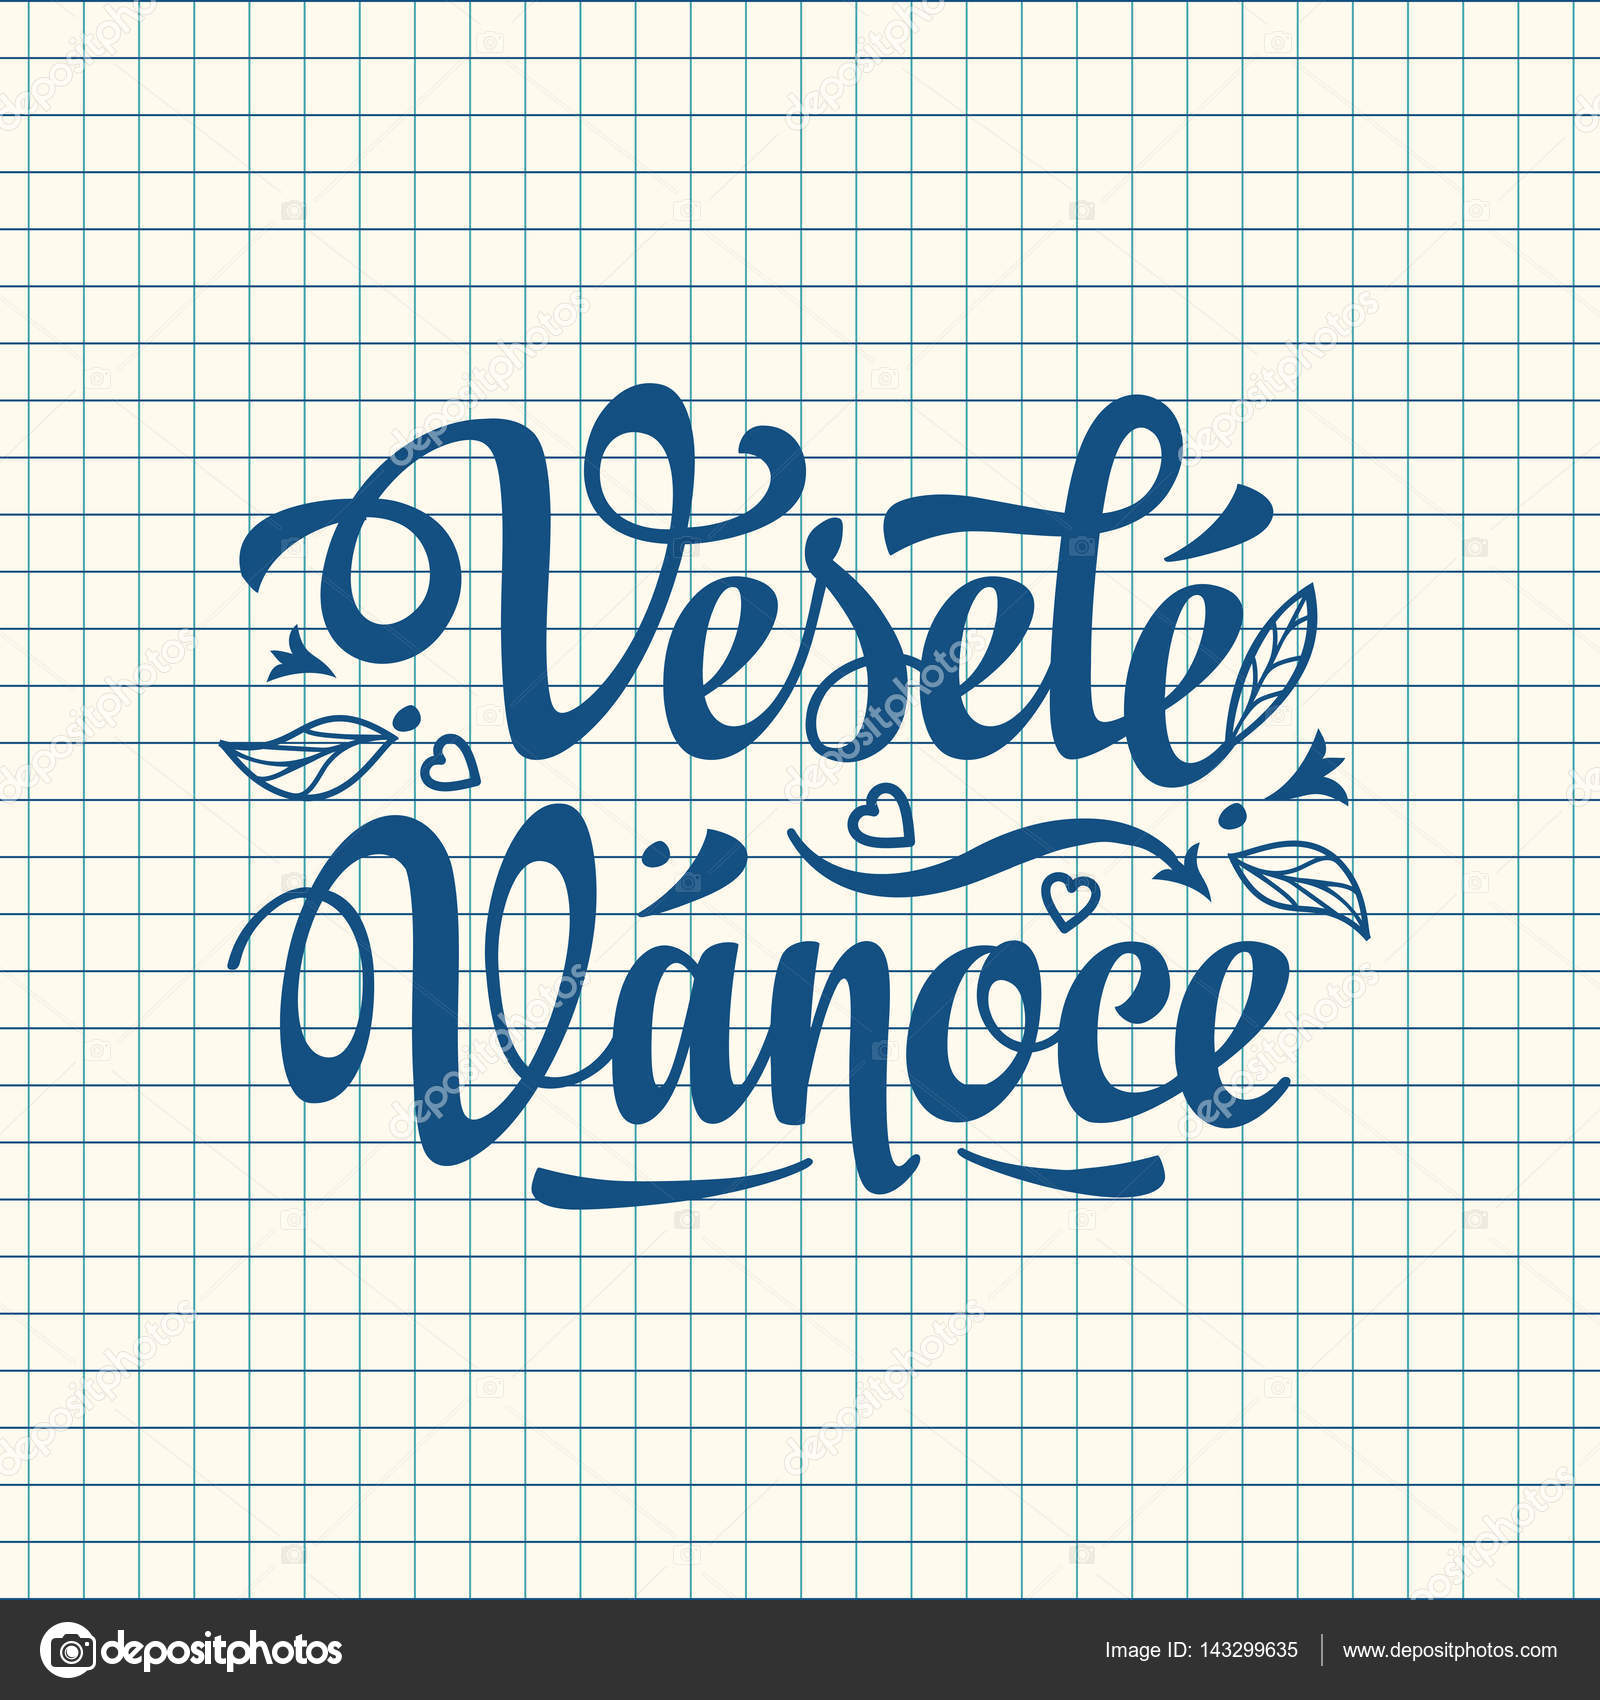 Vesele Vanoce Lettering Text For Greeting Cards Xmas In The Czech